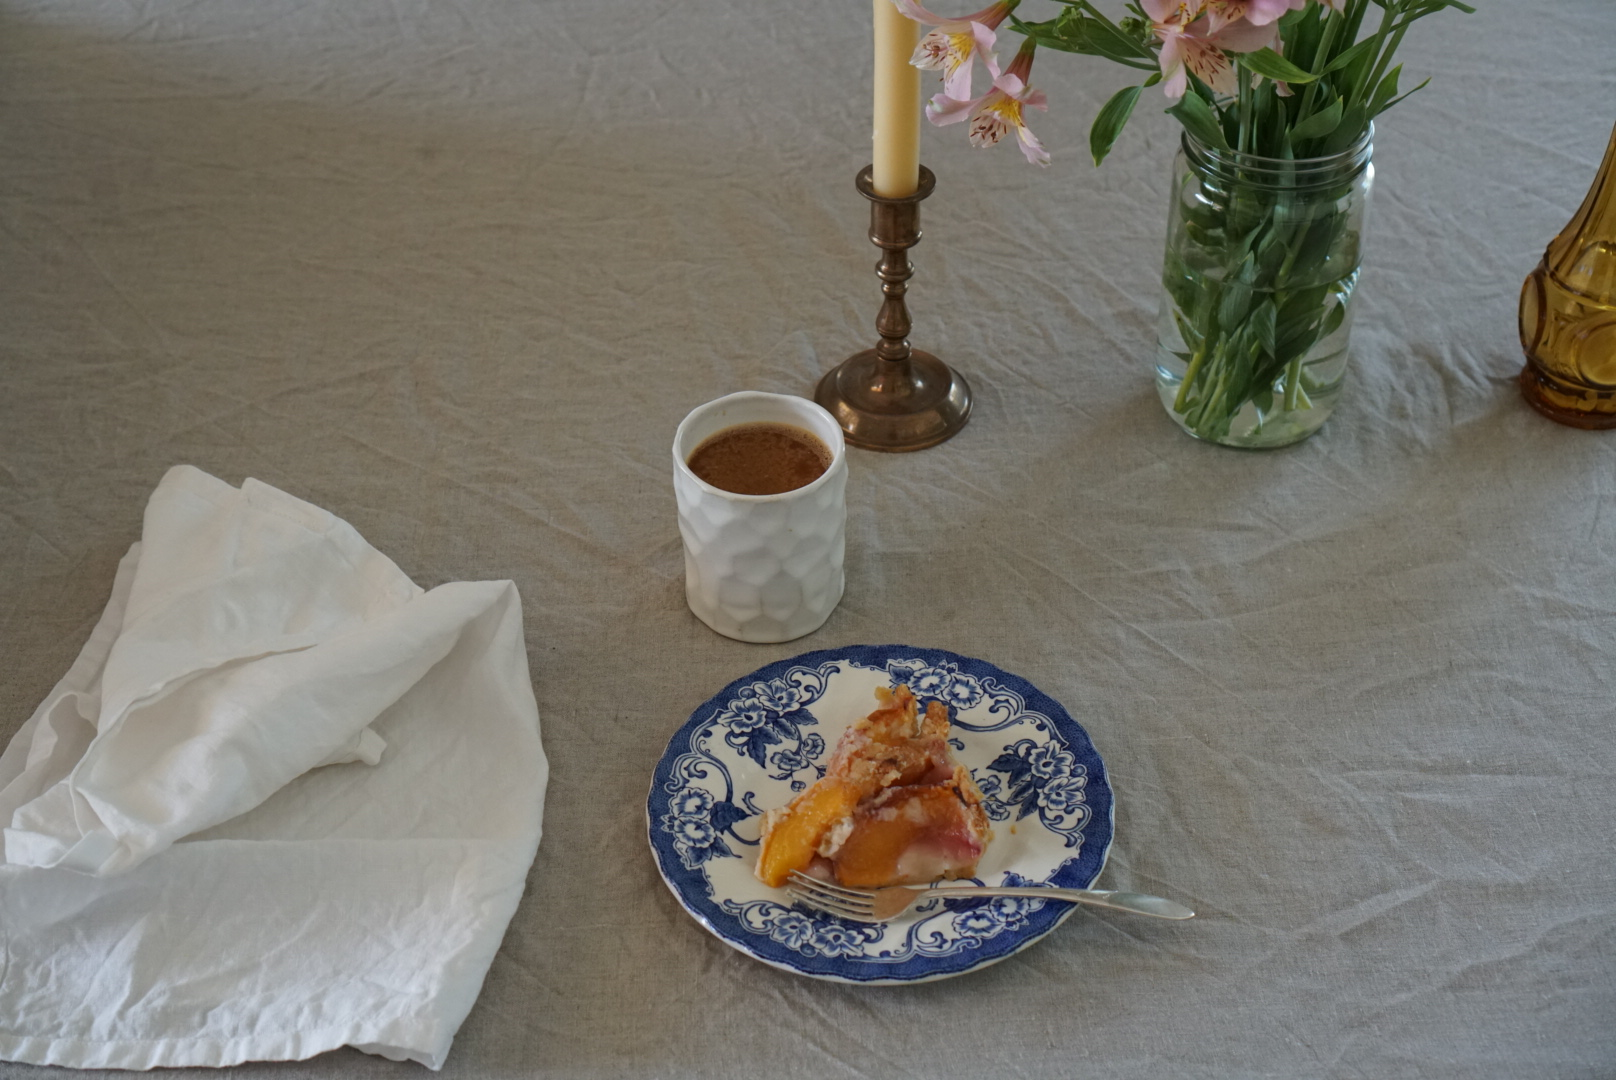 leftover peach tart and coffee